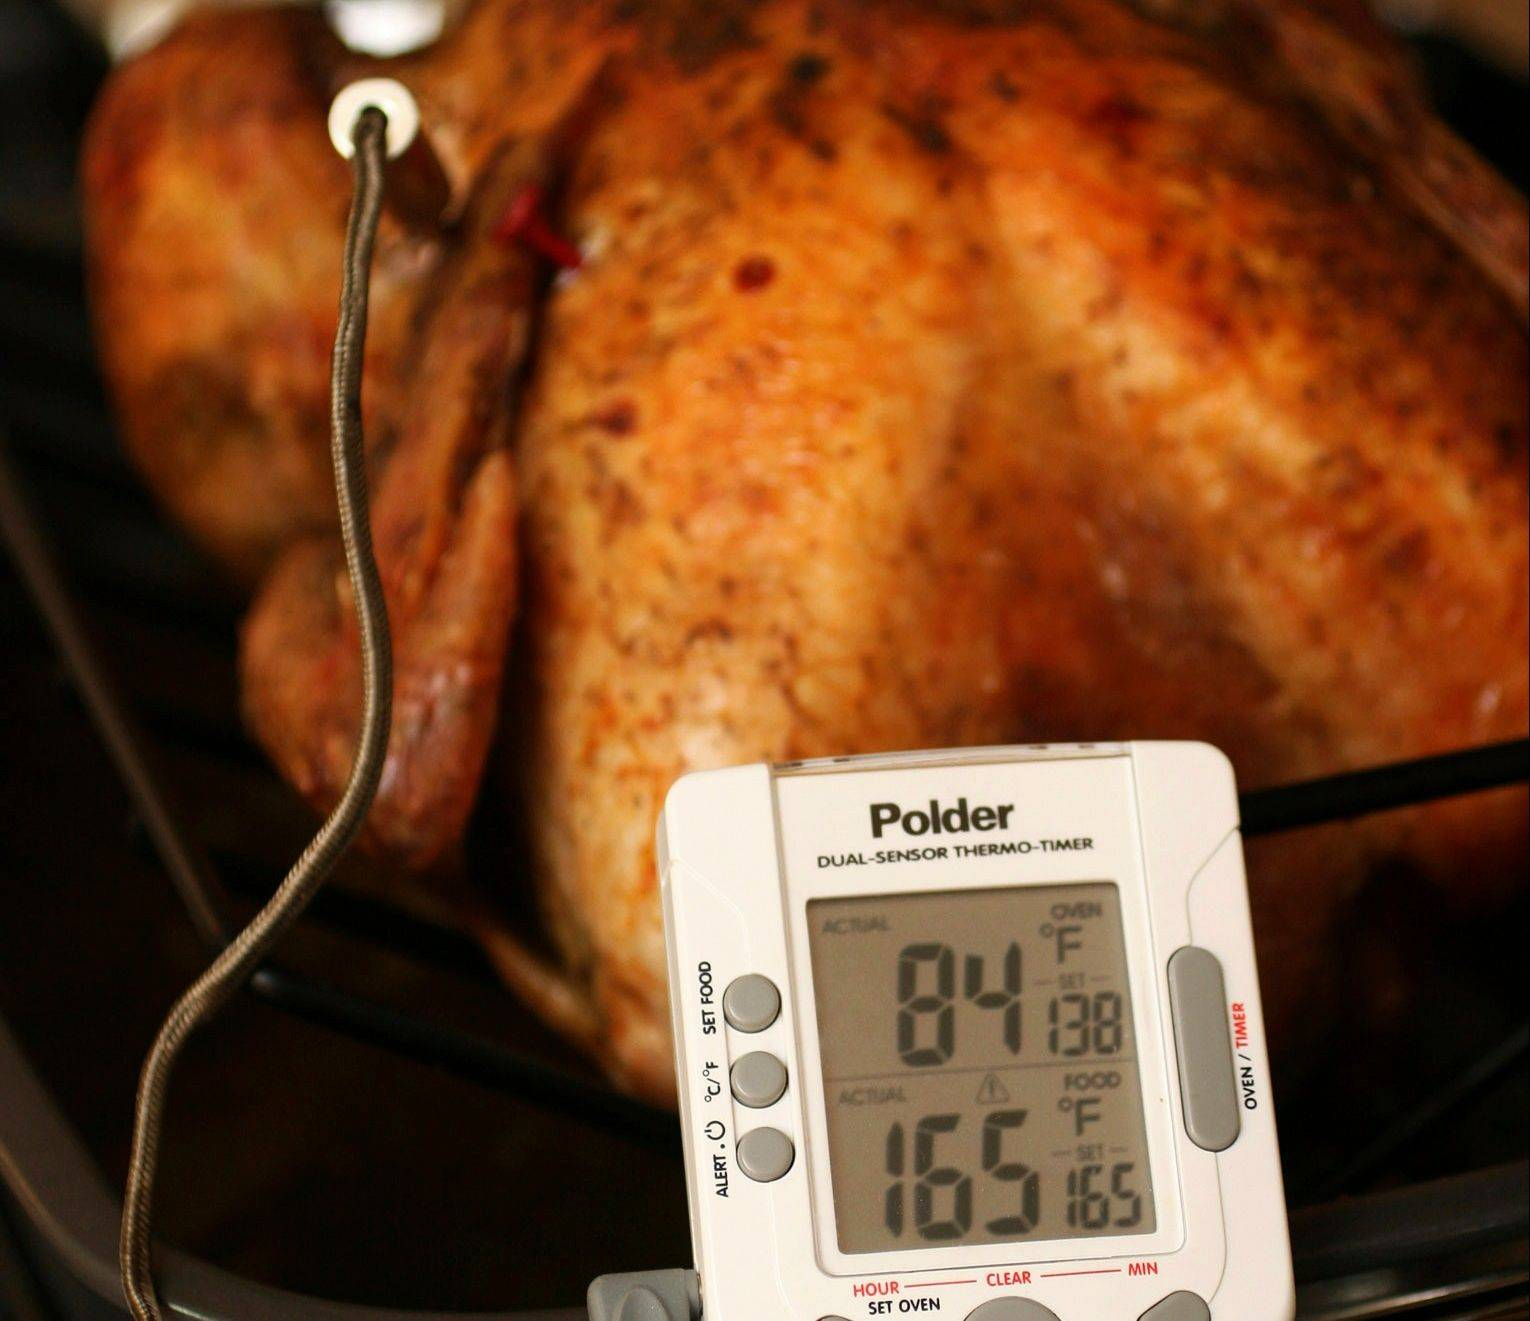 Federal guidelines state that your turkey is safe to eat when the innermost part of the thigh reaches 165 degrees. Some people say thigh meat tastes better at 170 degrees. If the turkey is stuffed, the stuffing must also reach 165 degrees.